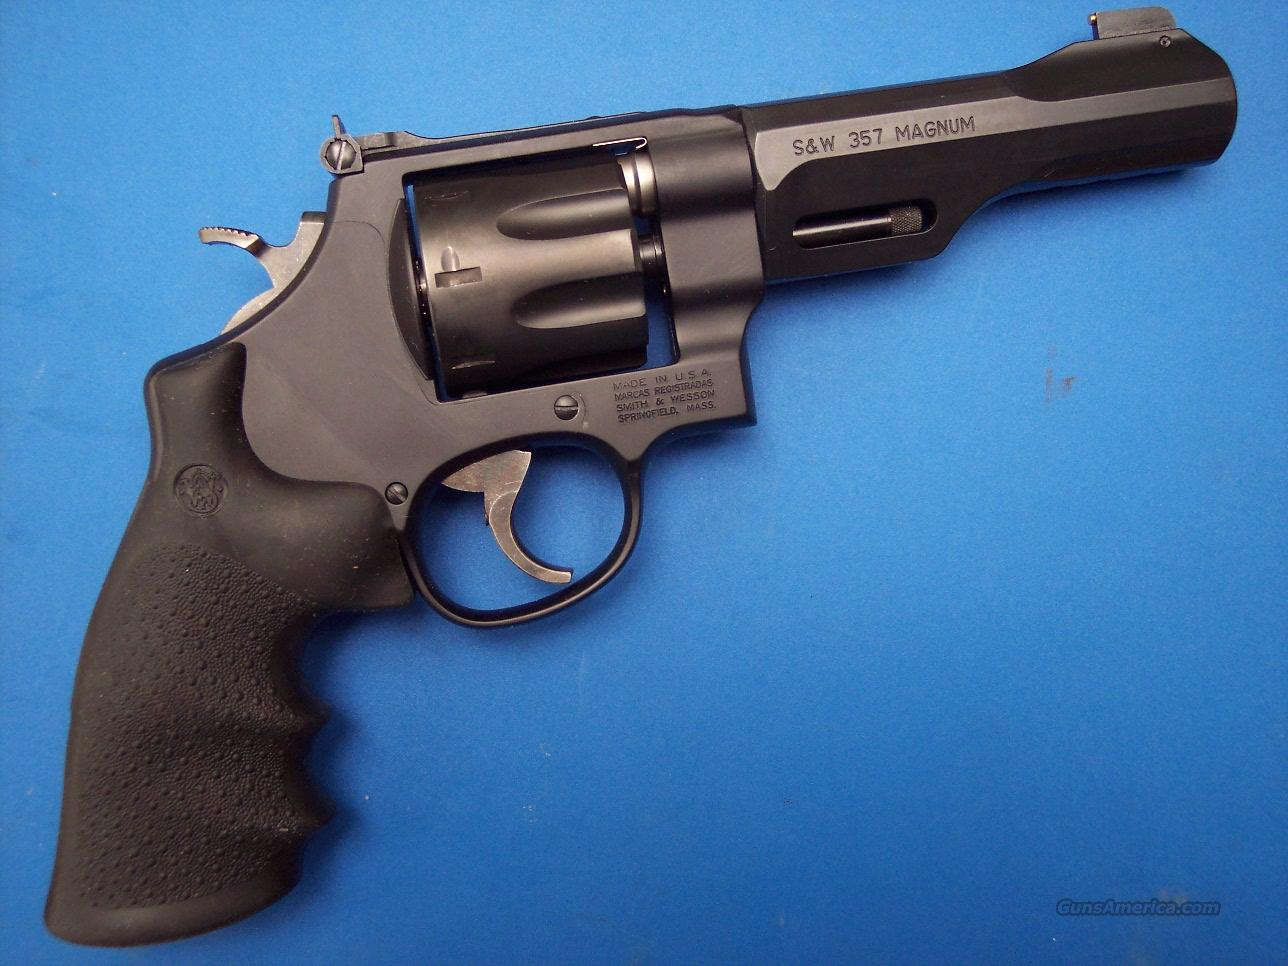 Smith & Wesson 327 R8 Performance Center .357 Mag *NEW*  Guns > Pistols > Smith & Wesson Revolvers > Performance Center